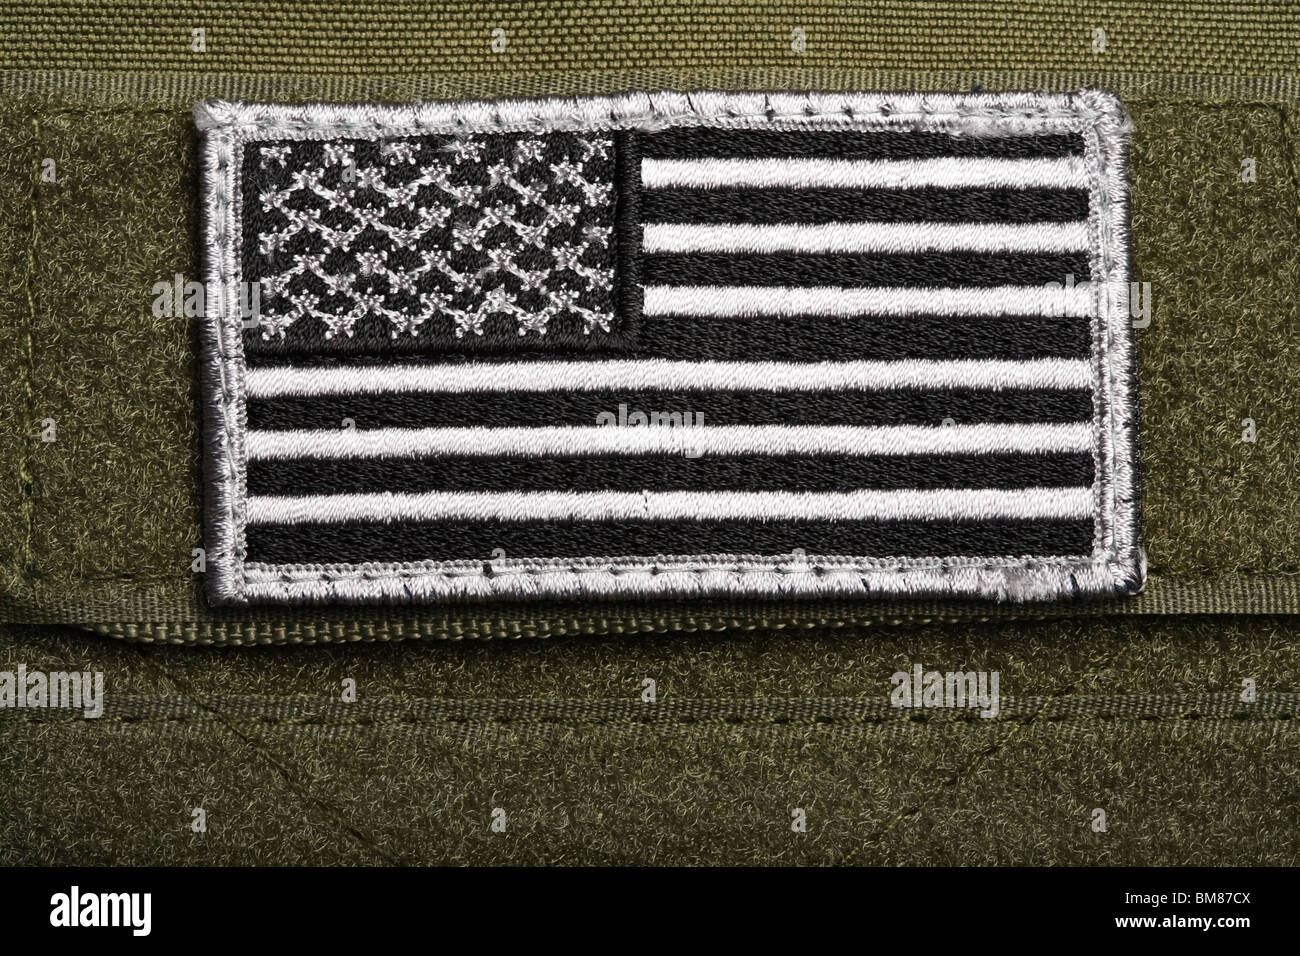 American military flag patch on a velcro, green background. Close-up shot. - Stock Image